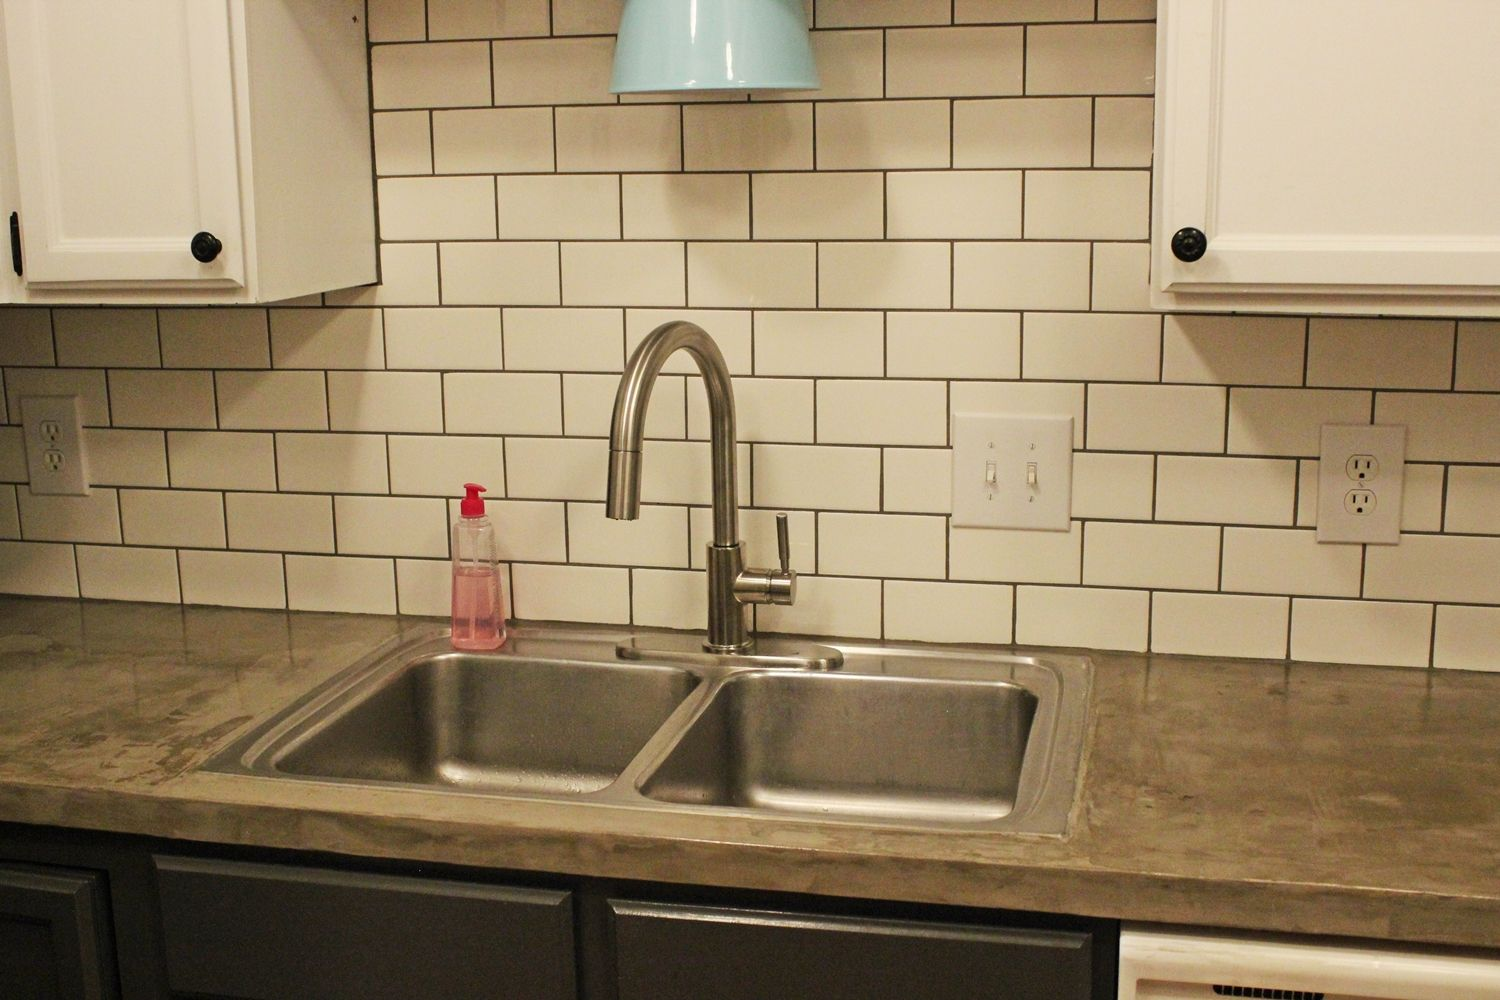 Beautiful kitchen update - light, backsplash and sprayer faucet